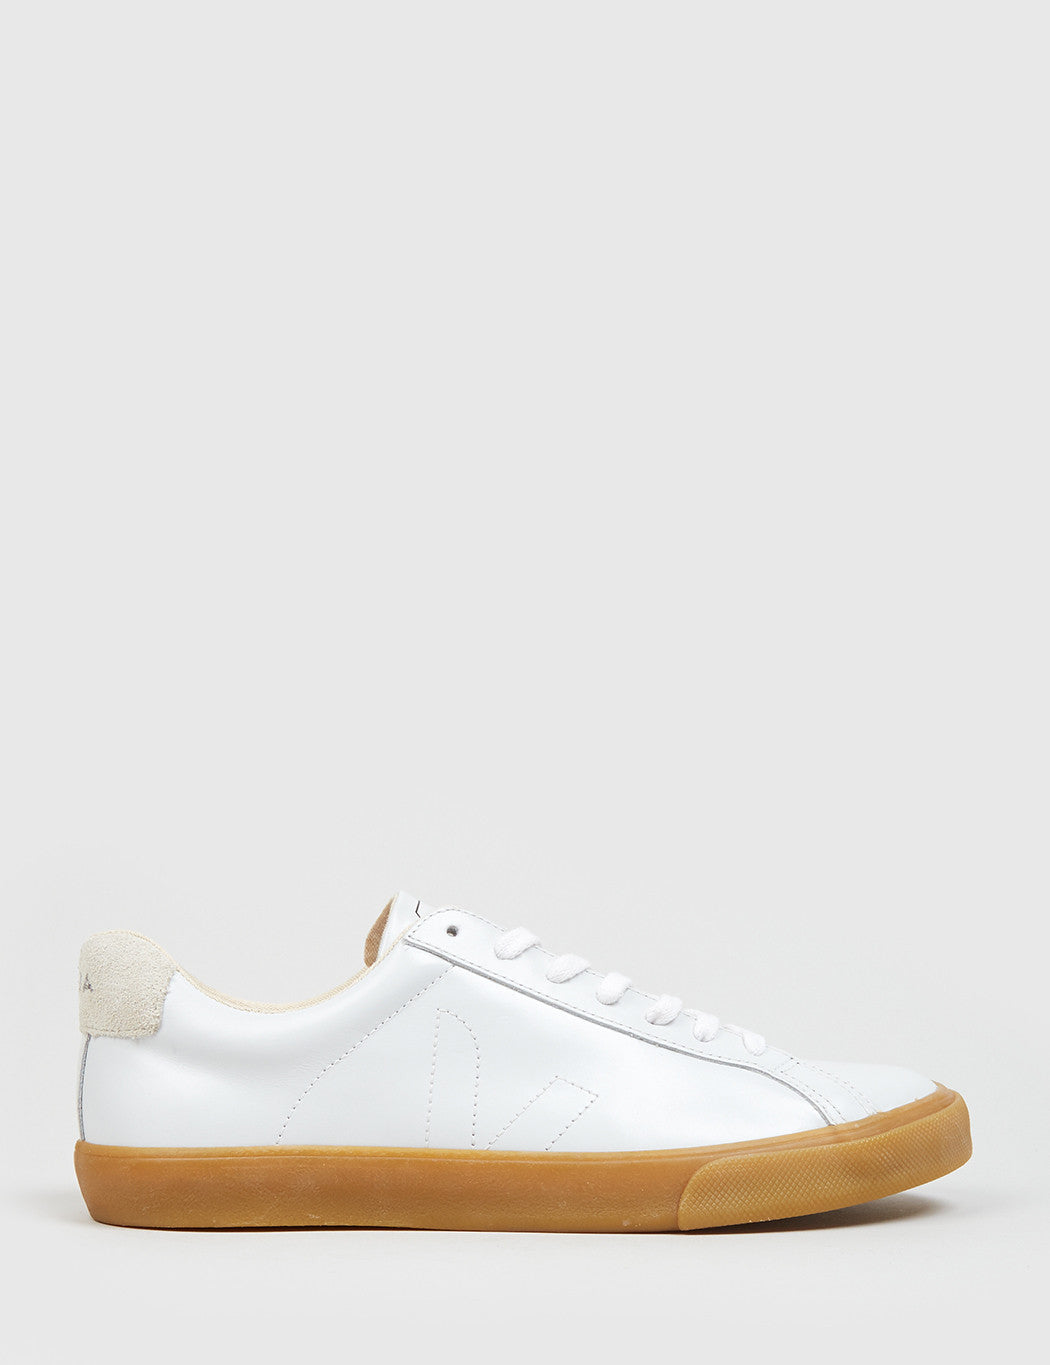 Veja Esplar Low Leather Trainers - Extra White/Natural